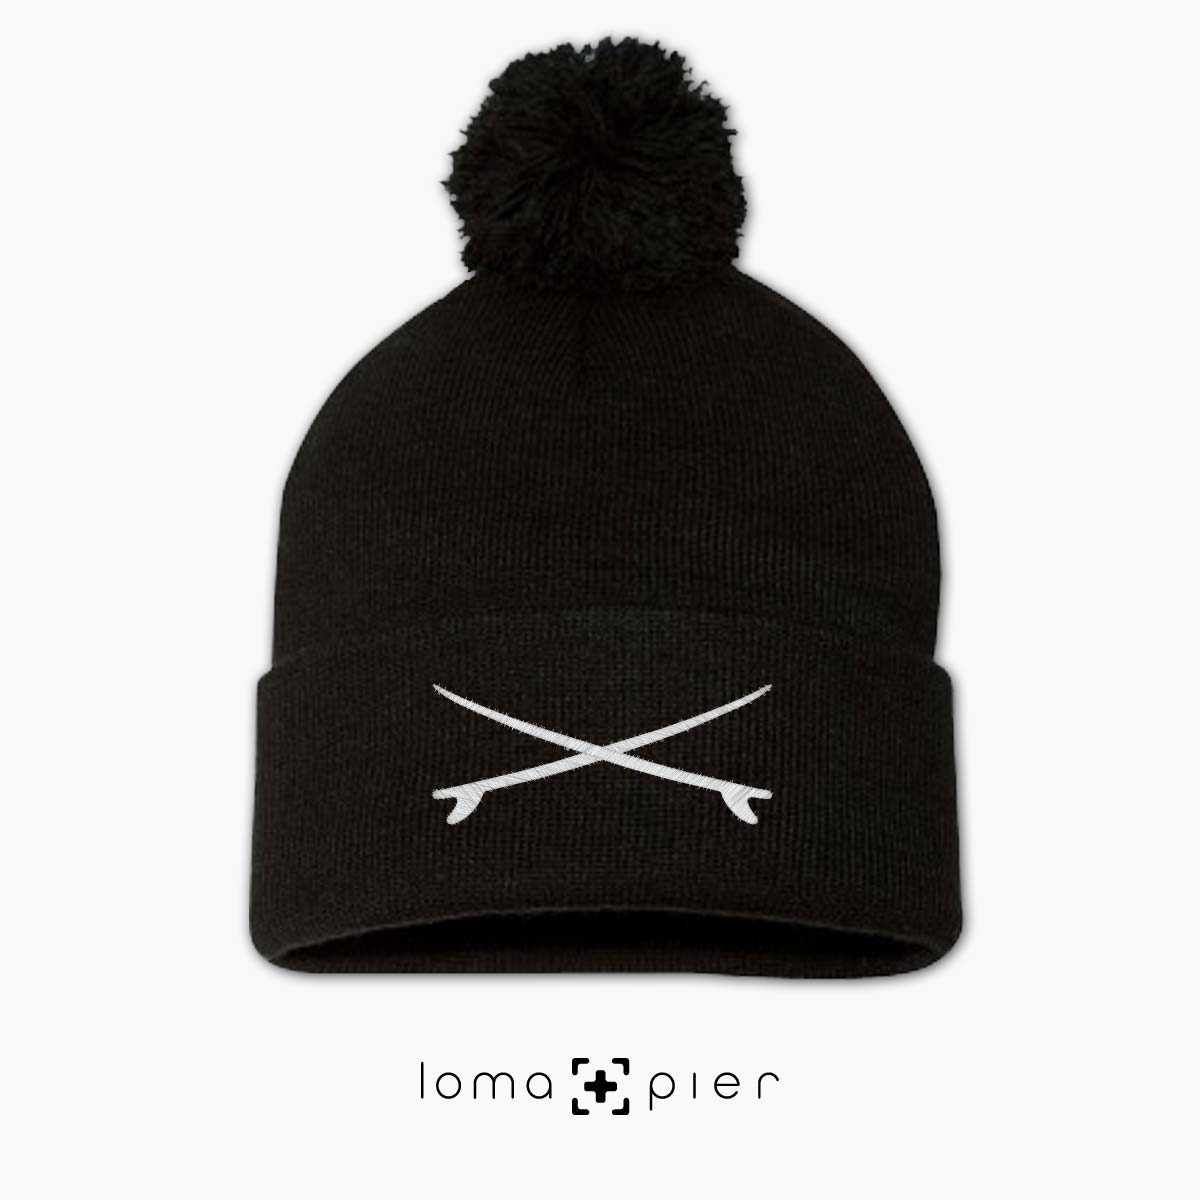 X MARKS THE SURF icon embroidered on a black pom pom beanie by loma+pier beanie store